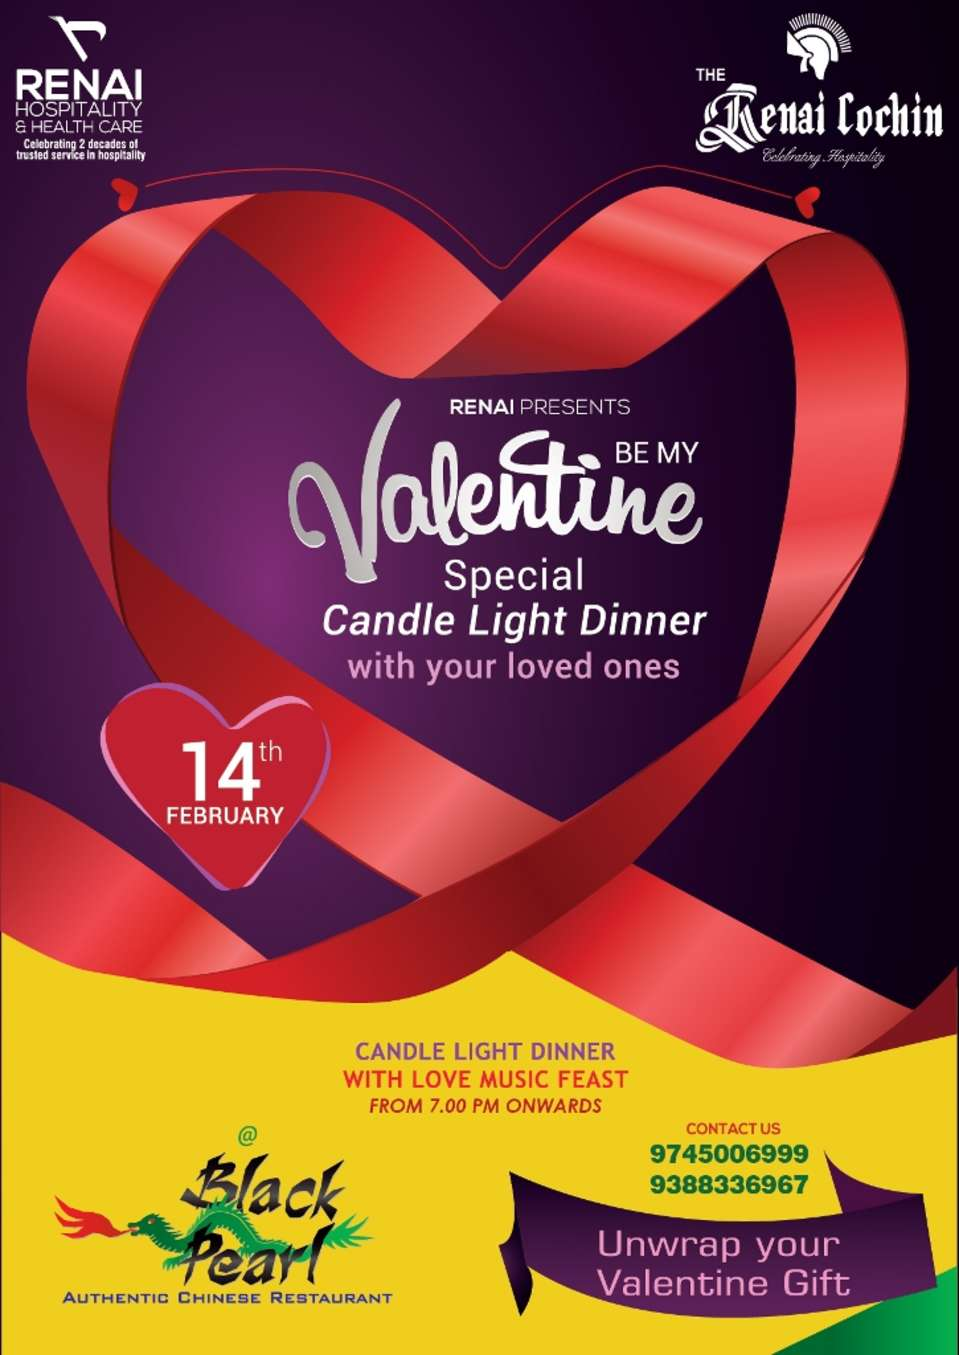 Candle light dinner with love music feast